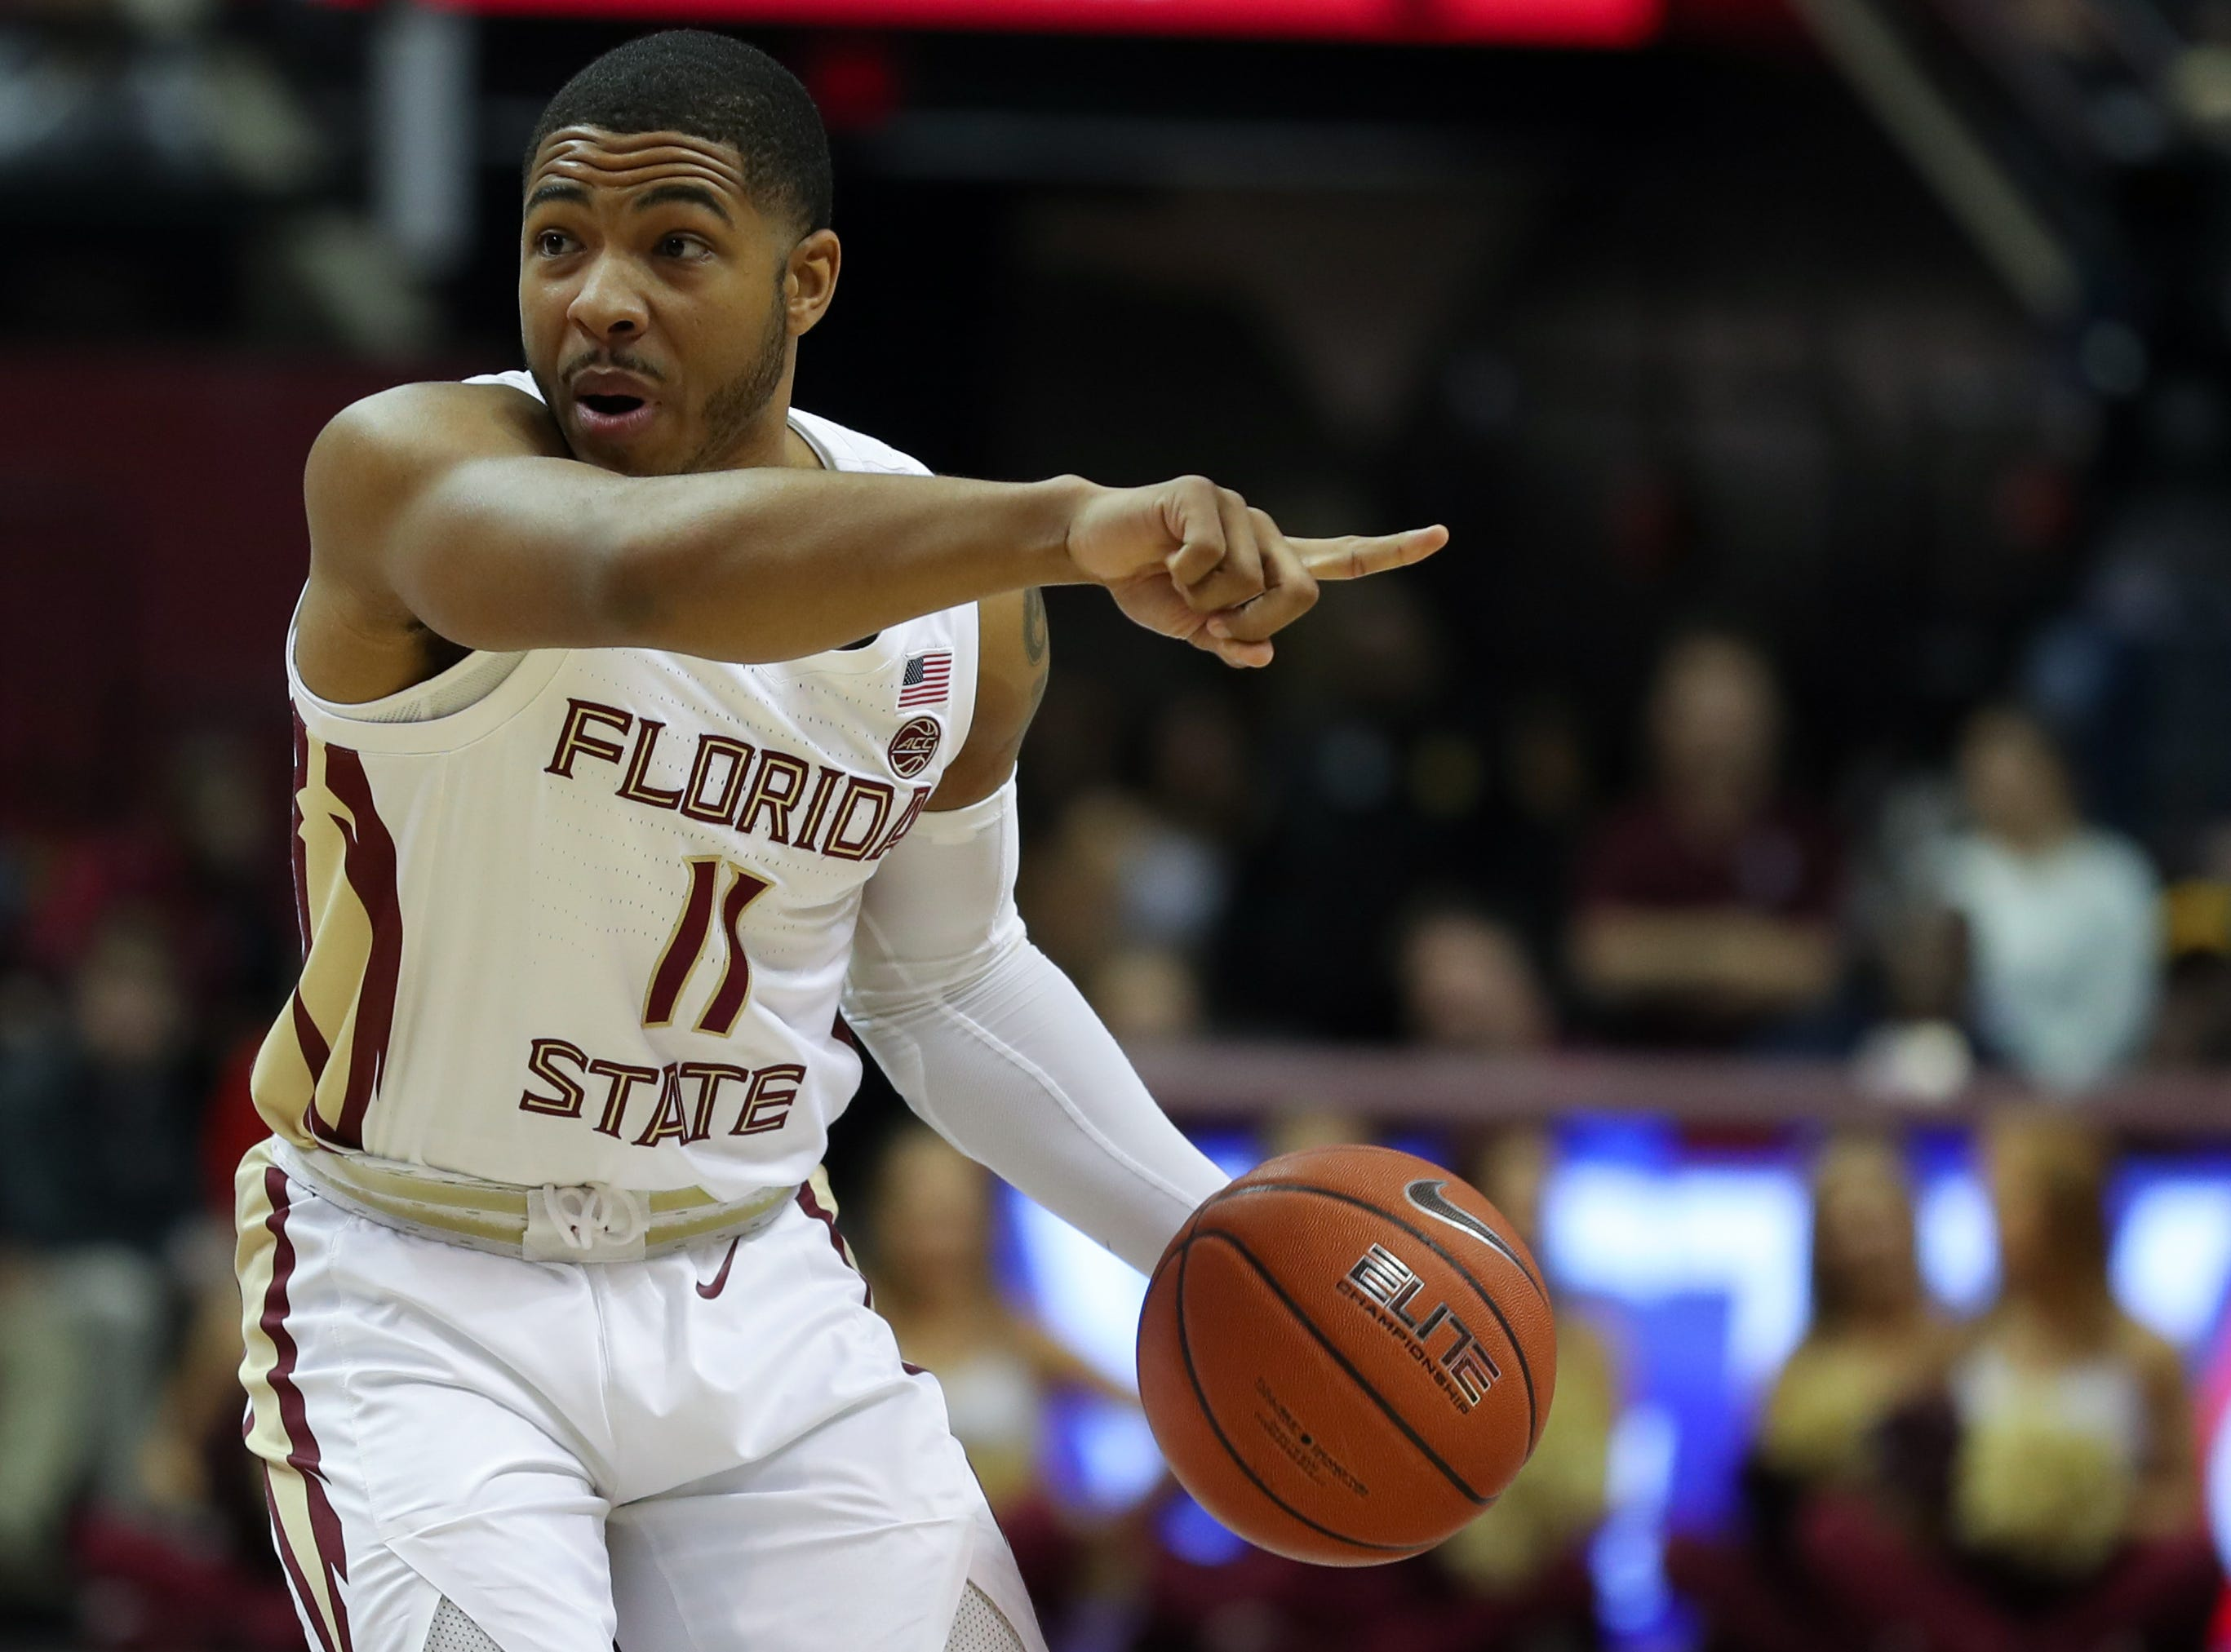 Florida State Seminoles guard David Nichols (11) calls out a play during a game between FSU and Virginia Tech at the Donald L. Tucker Civic Center Tuesday, March 5, 2019.